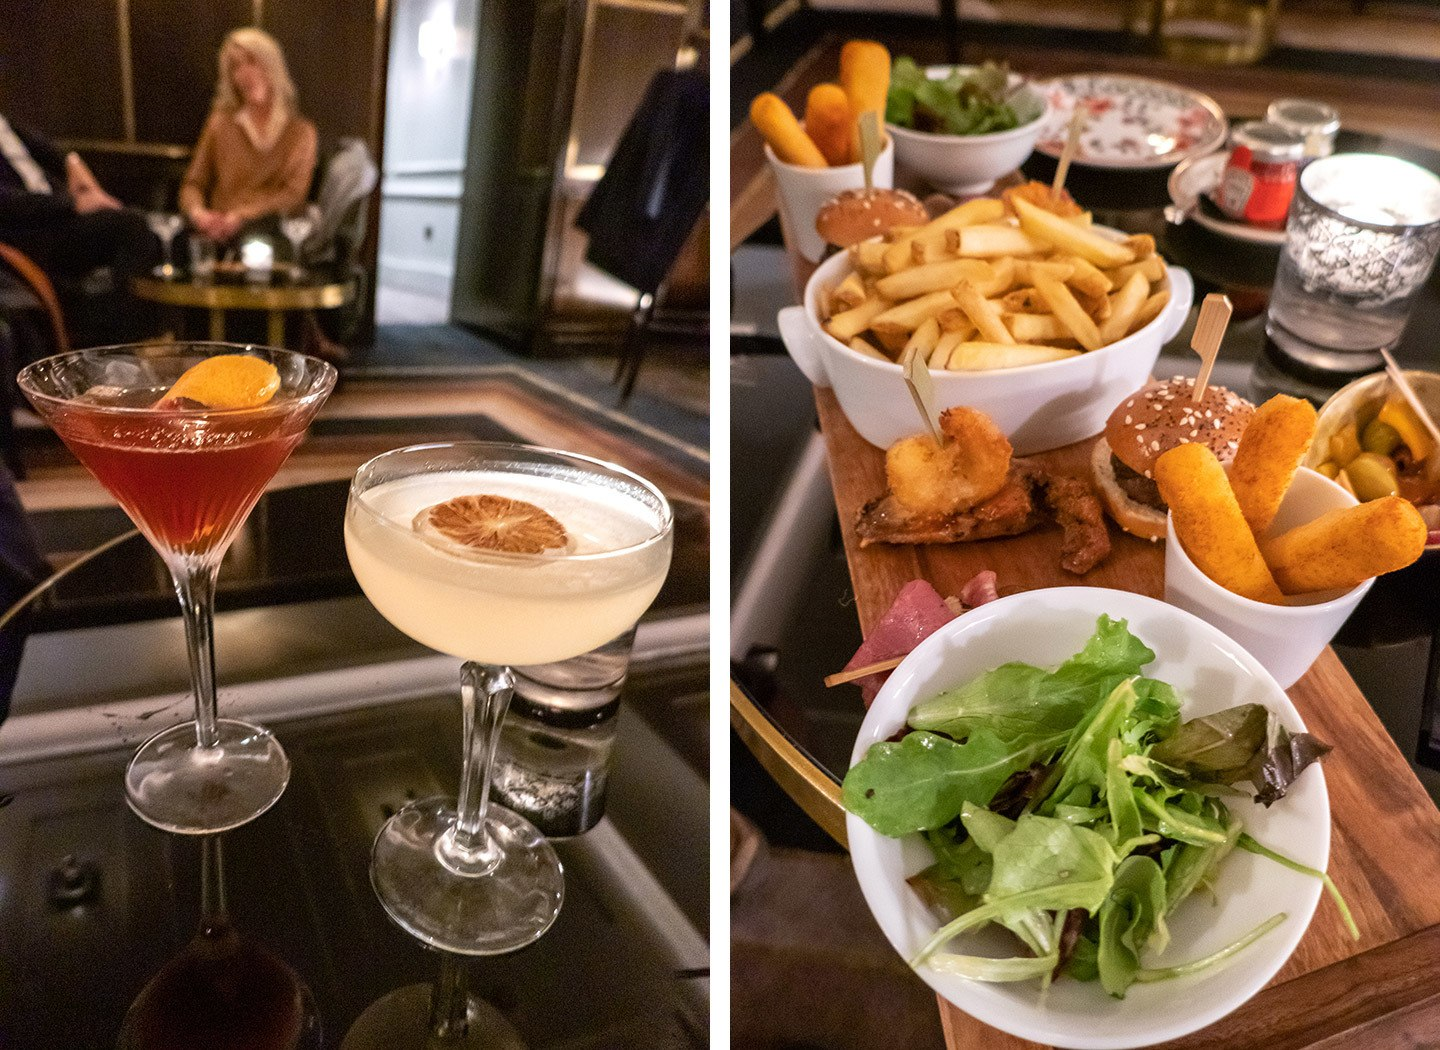 Cocktails at Flemings Hotel in Mayfair, London